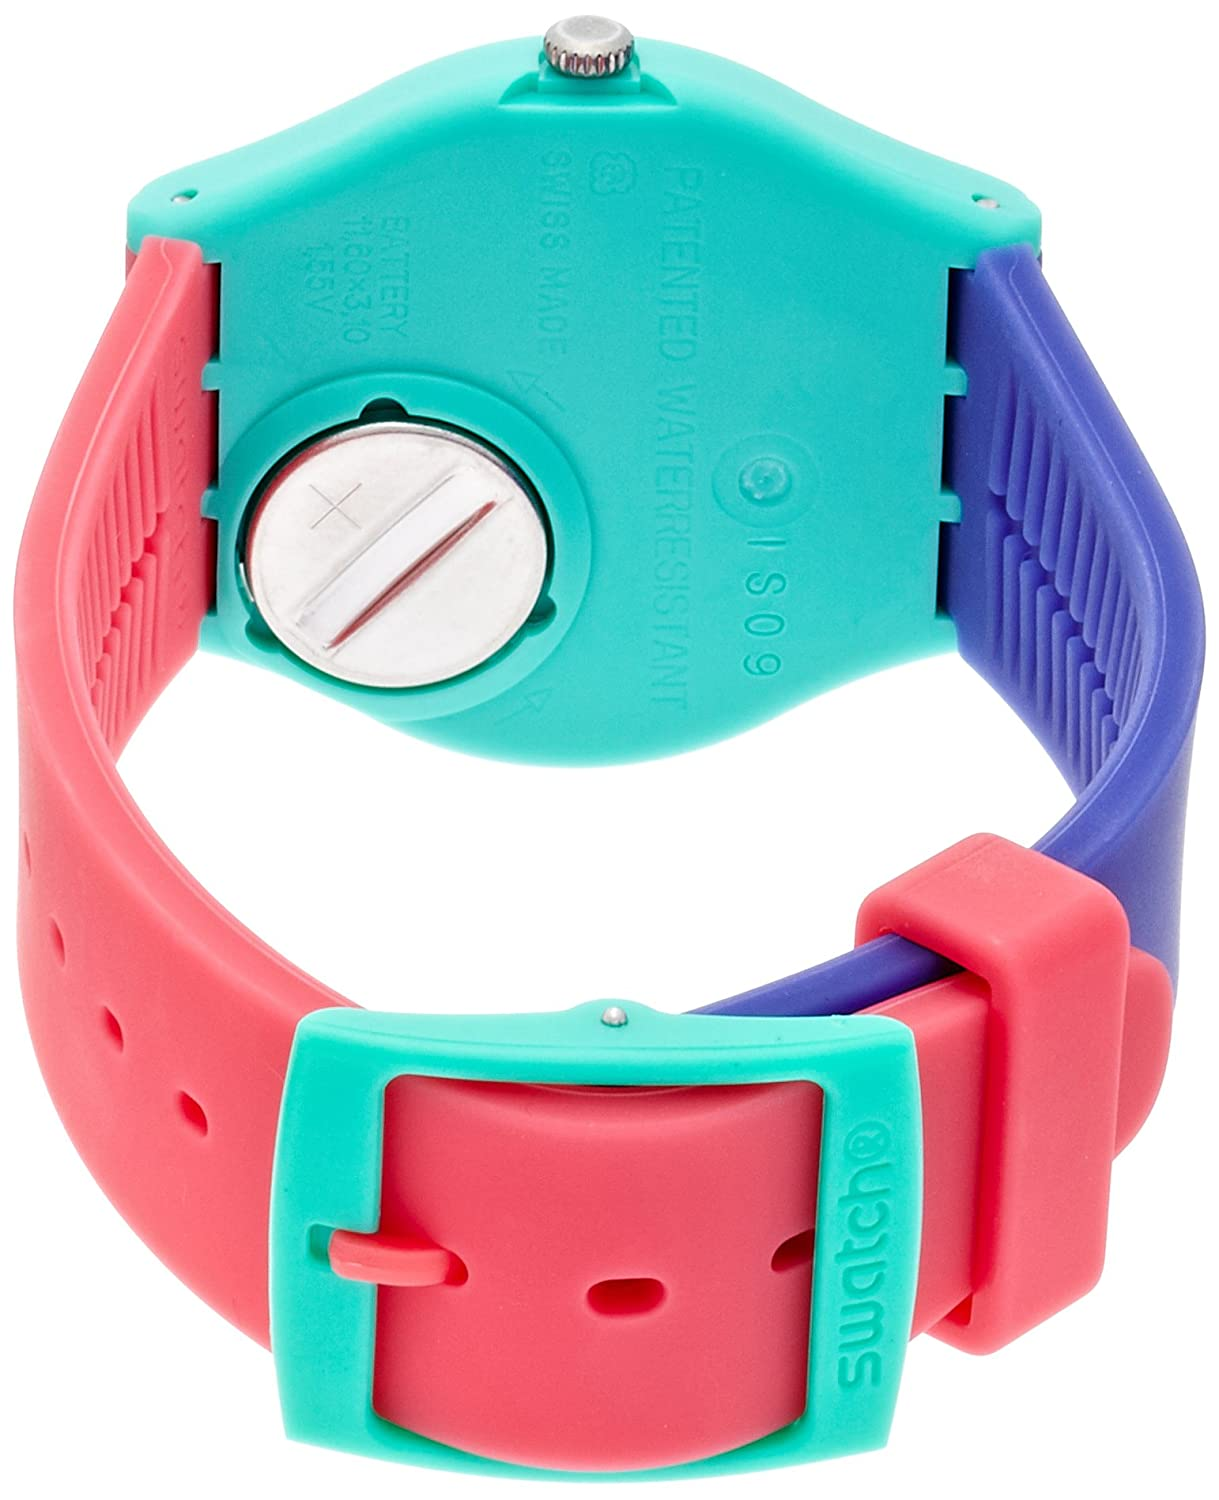 Amazon.com: Swatch Unisex GG215 Shunbukin Analog Display Quartz Multi-Color Watch: Watches